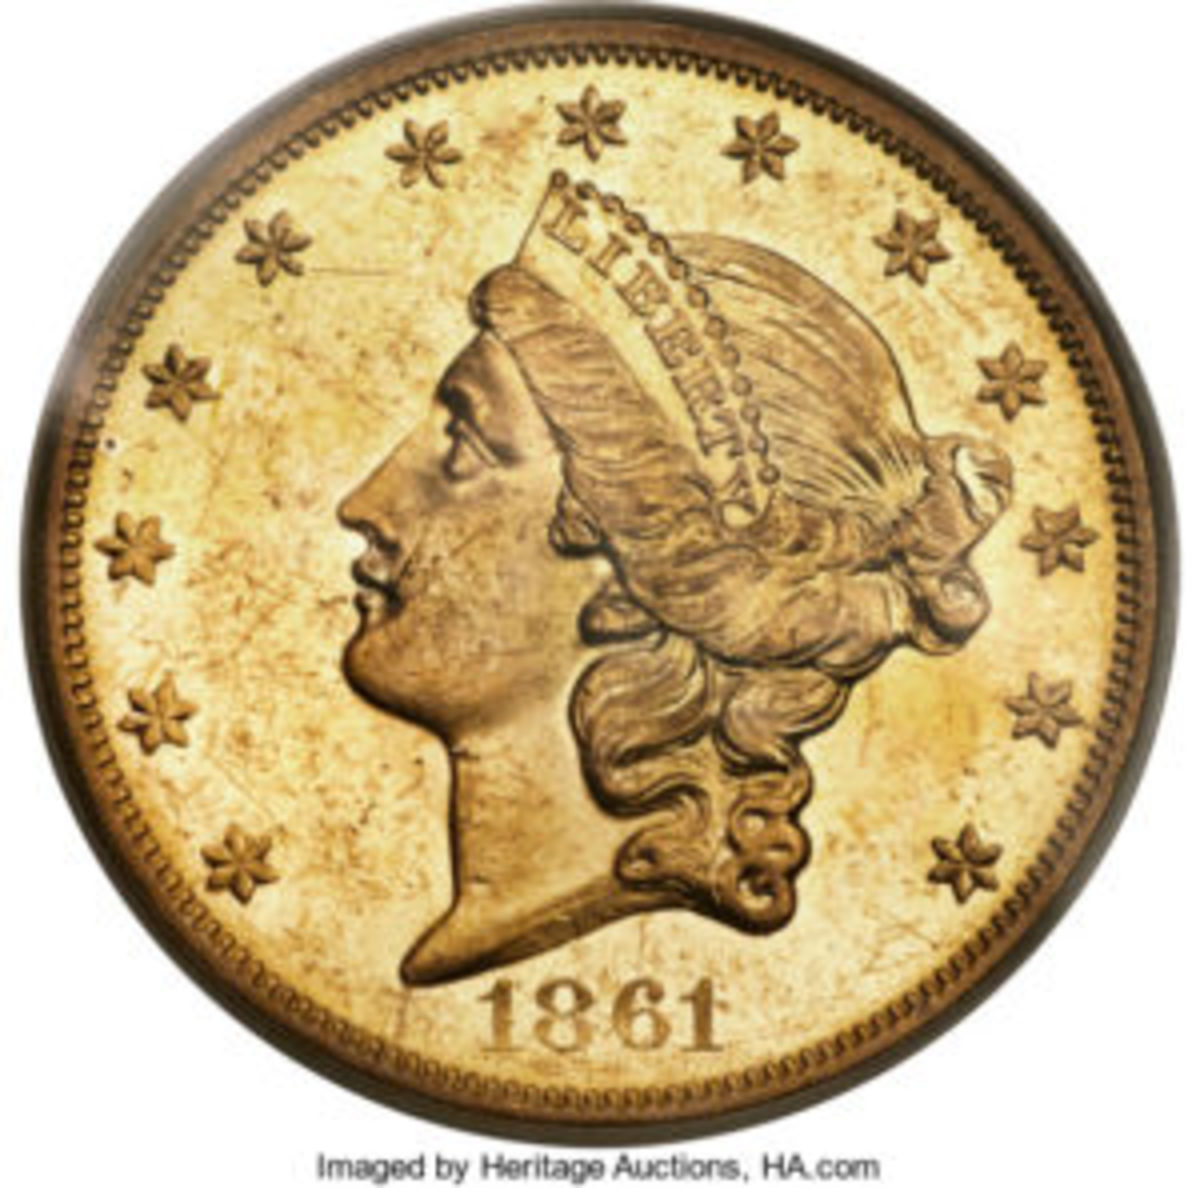 1861-O double eagle $20 gold coin